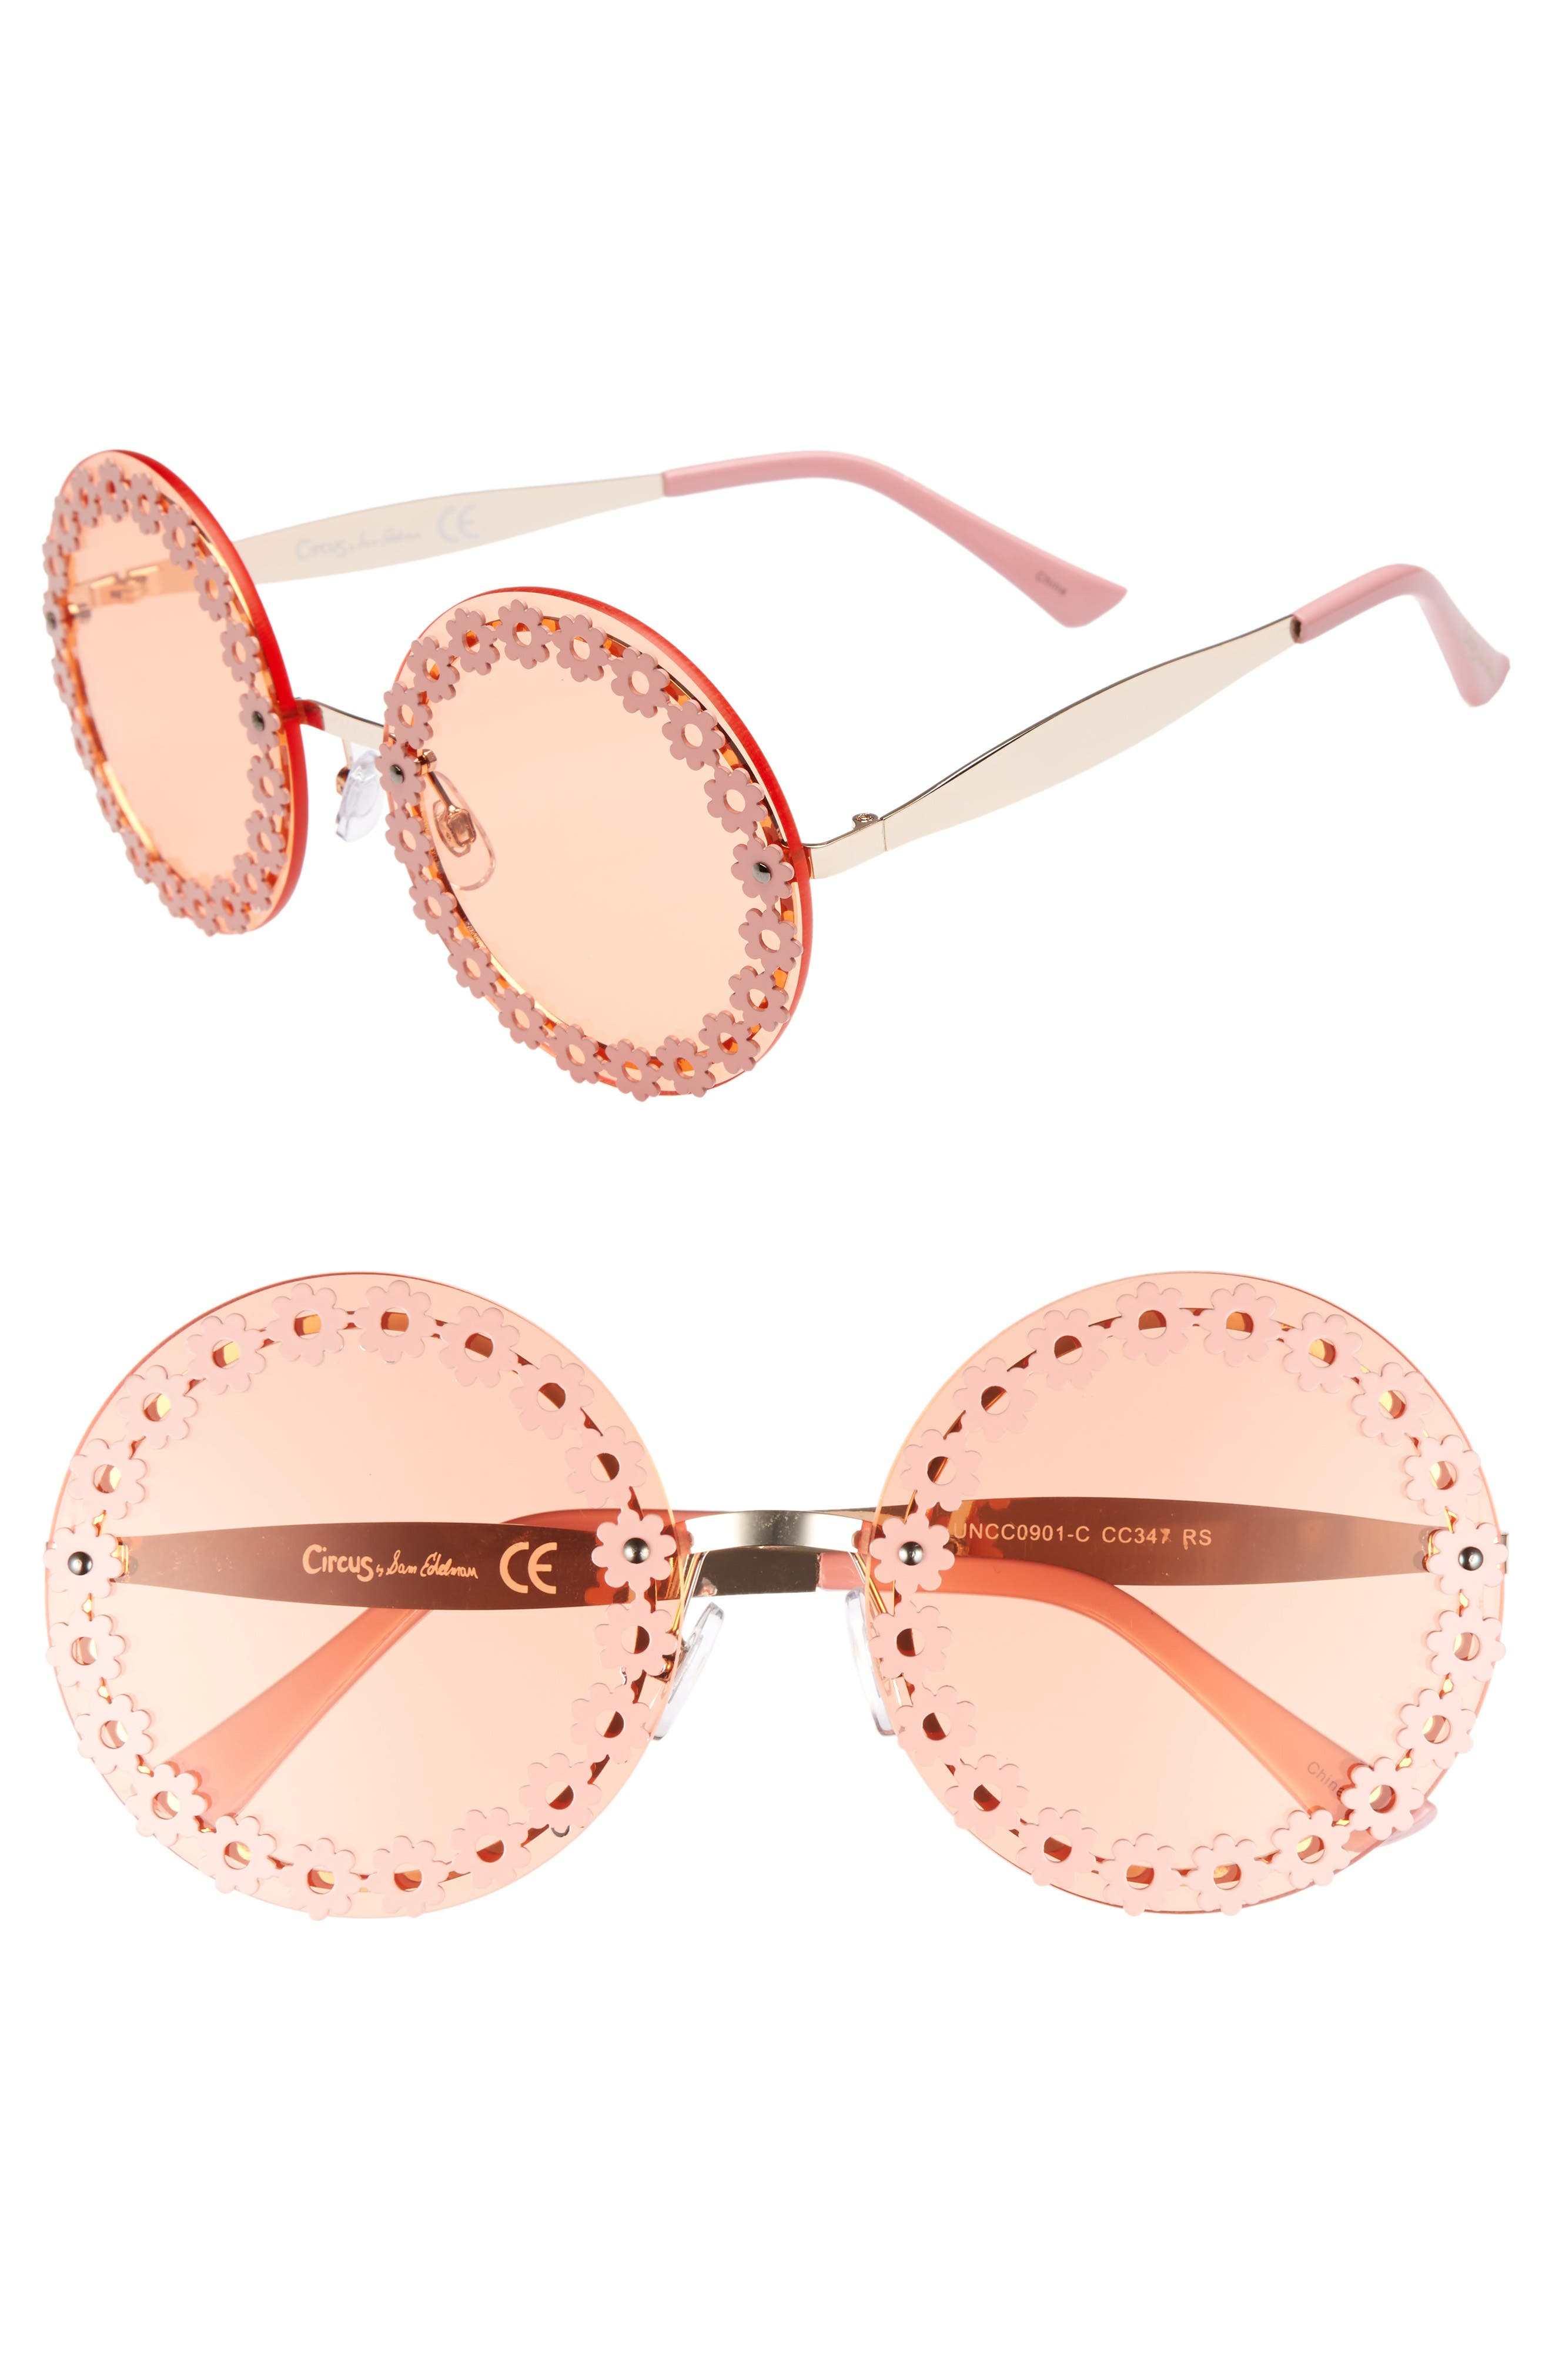 60mm Round Sunglasses,                             Main thumbnail 2, color,